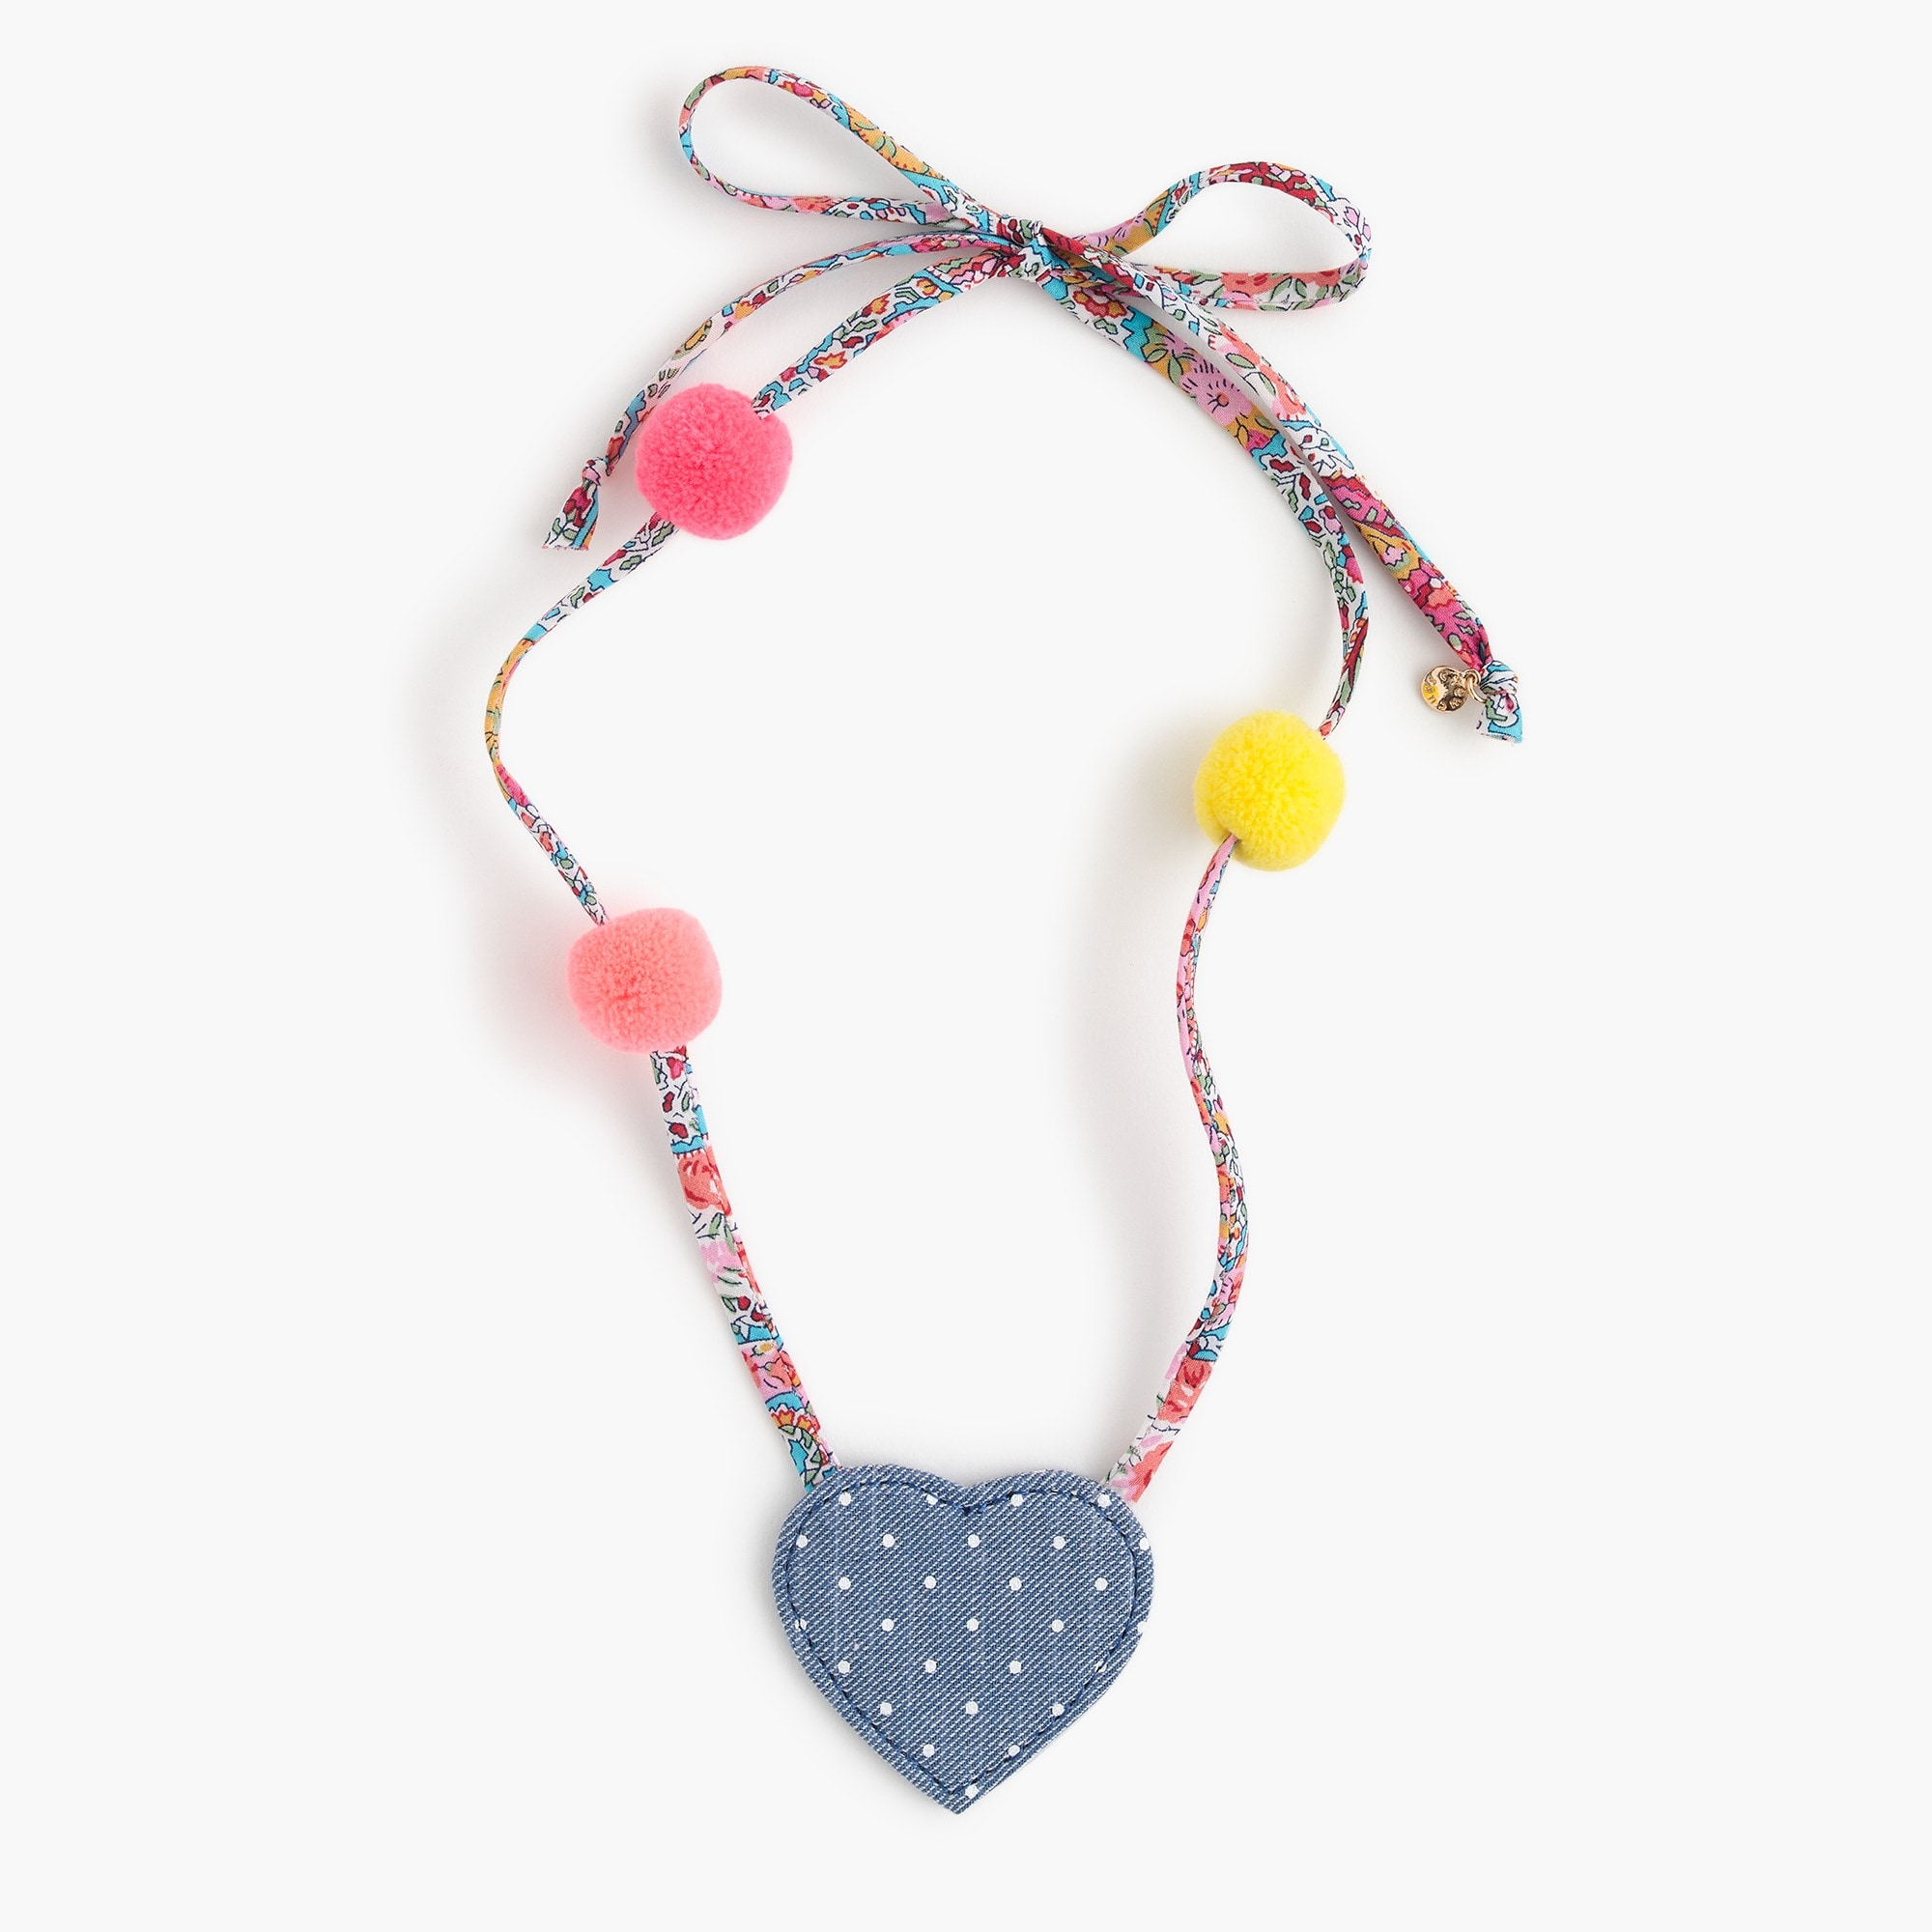 girls Girls' fabric necklace with hearts and pom-poms